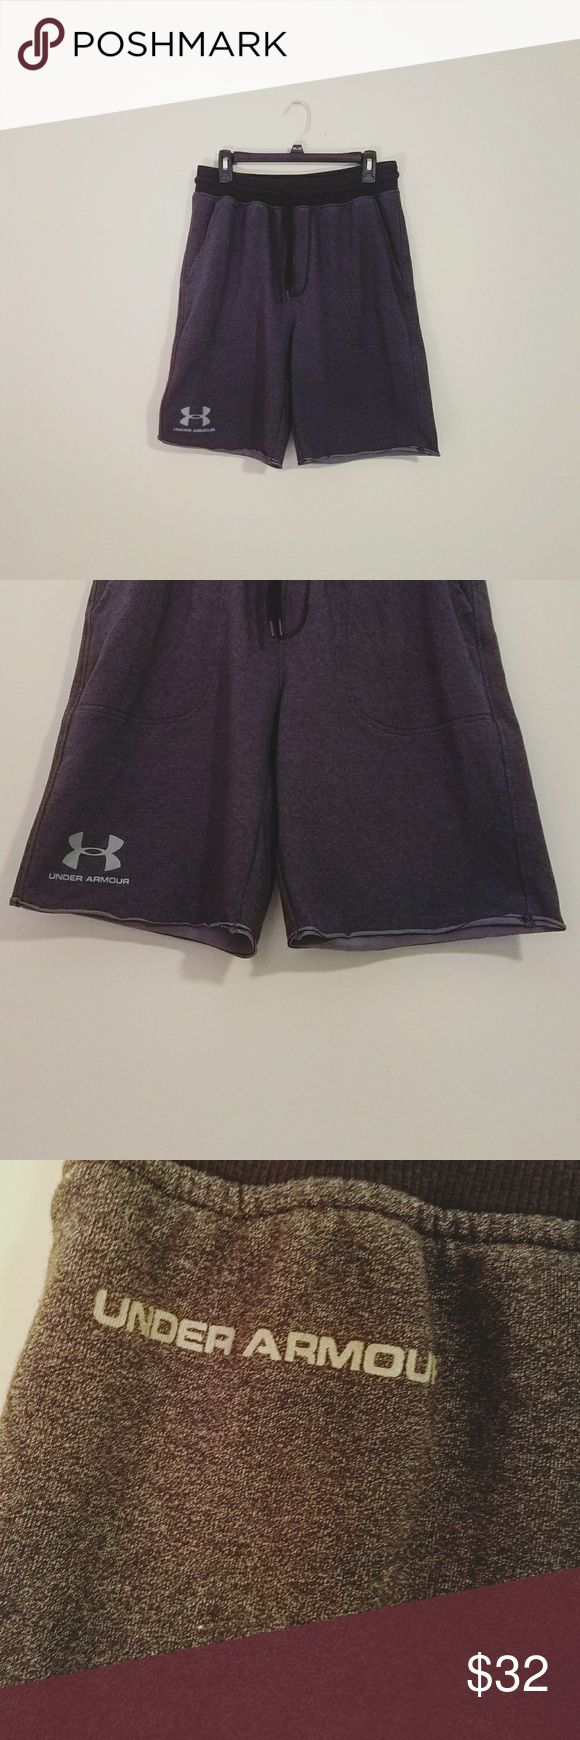 """Under Armour Men's Sweat/Athletic Shorts * These shorts do not have """"Under Armour written on the side....the picture is to show the length of the shorts. 